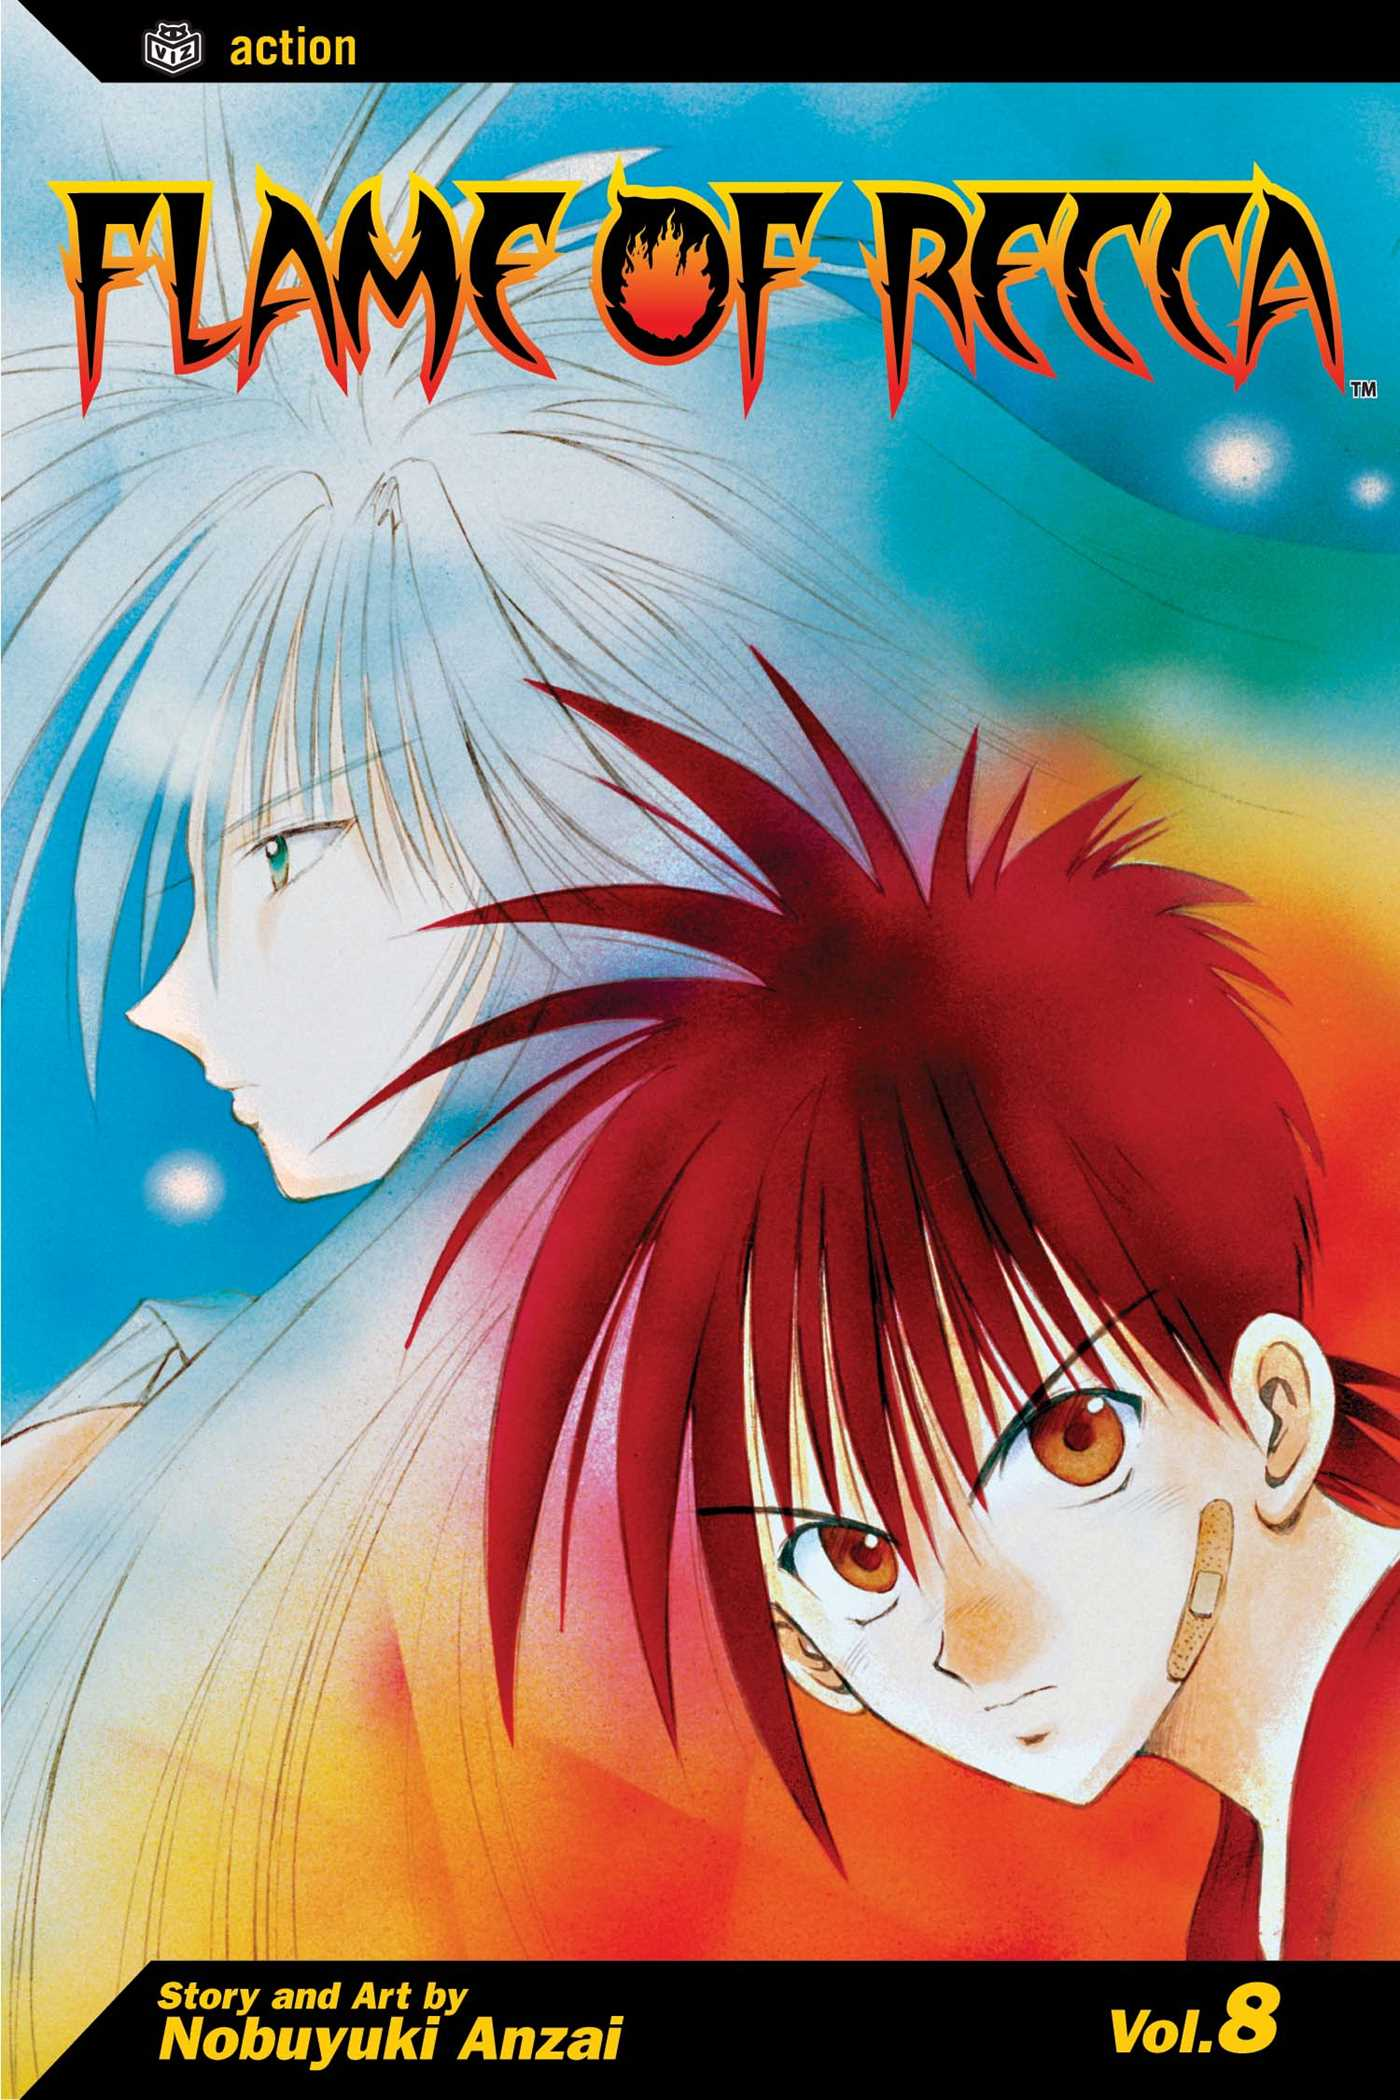 Flame of recca vol 8 9781591164807 hr